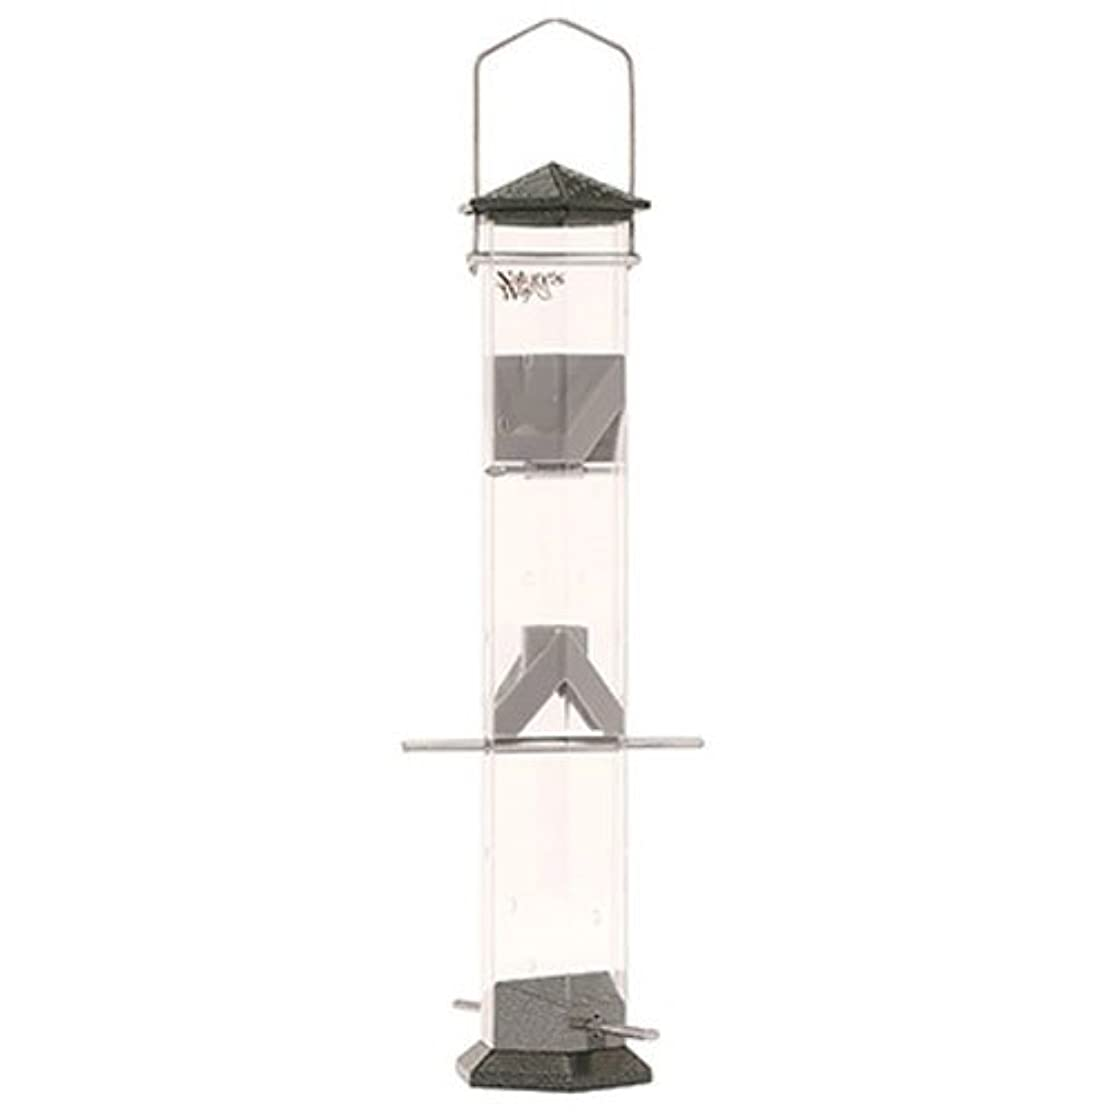 Nature's Way Bird Products DT17-P Deluxe Twist and Clean Thistle Feeder, 17-Inch, Pewter laotsfop2